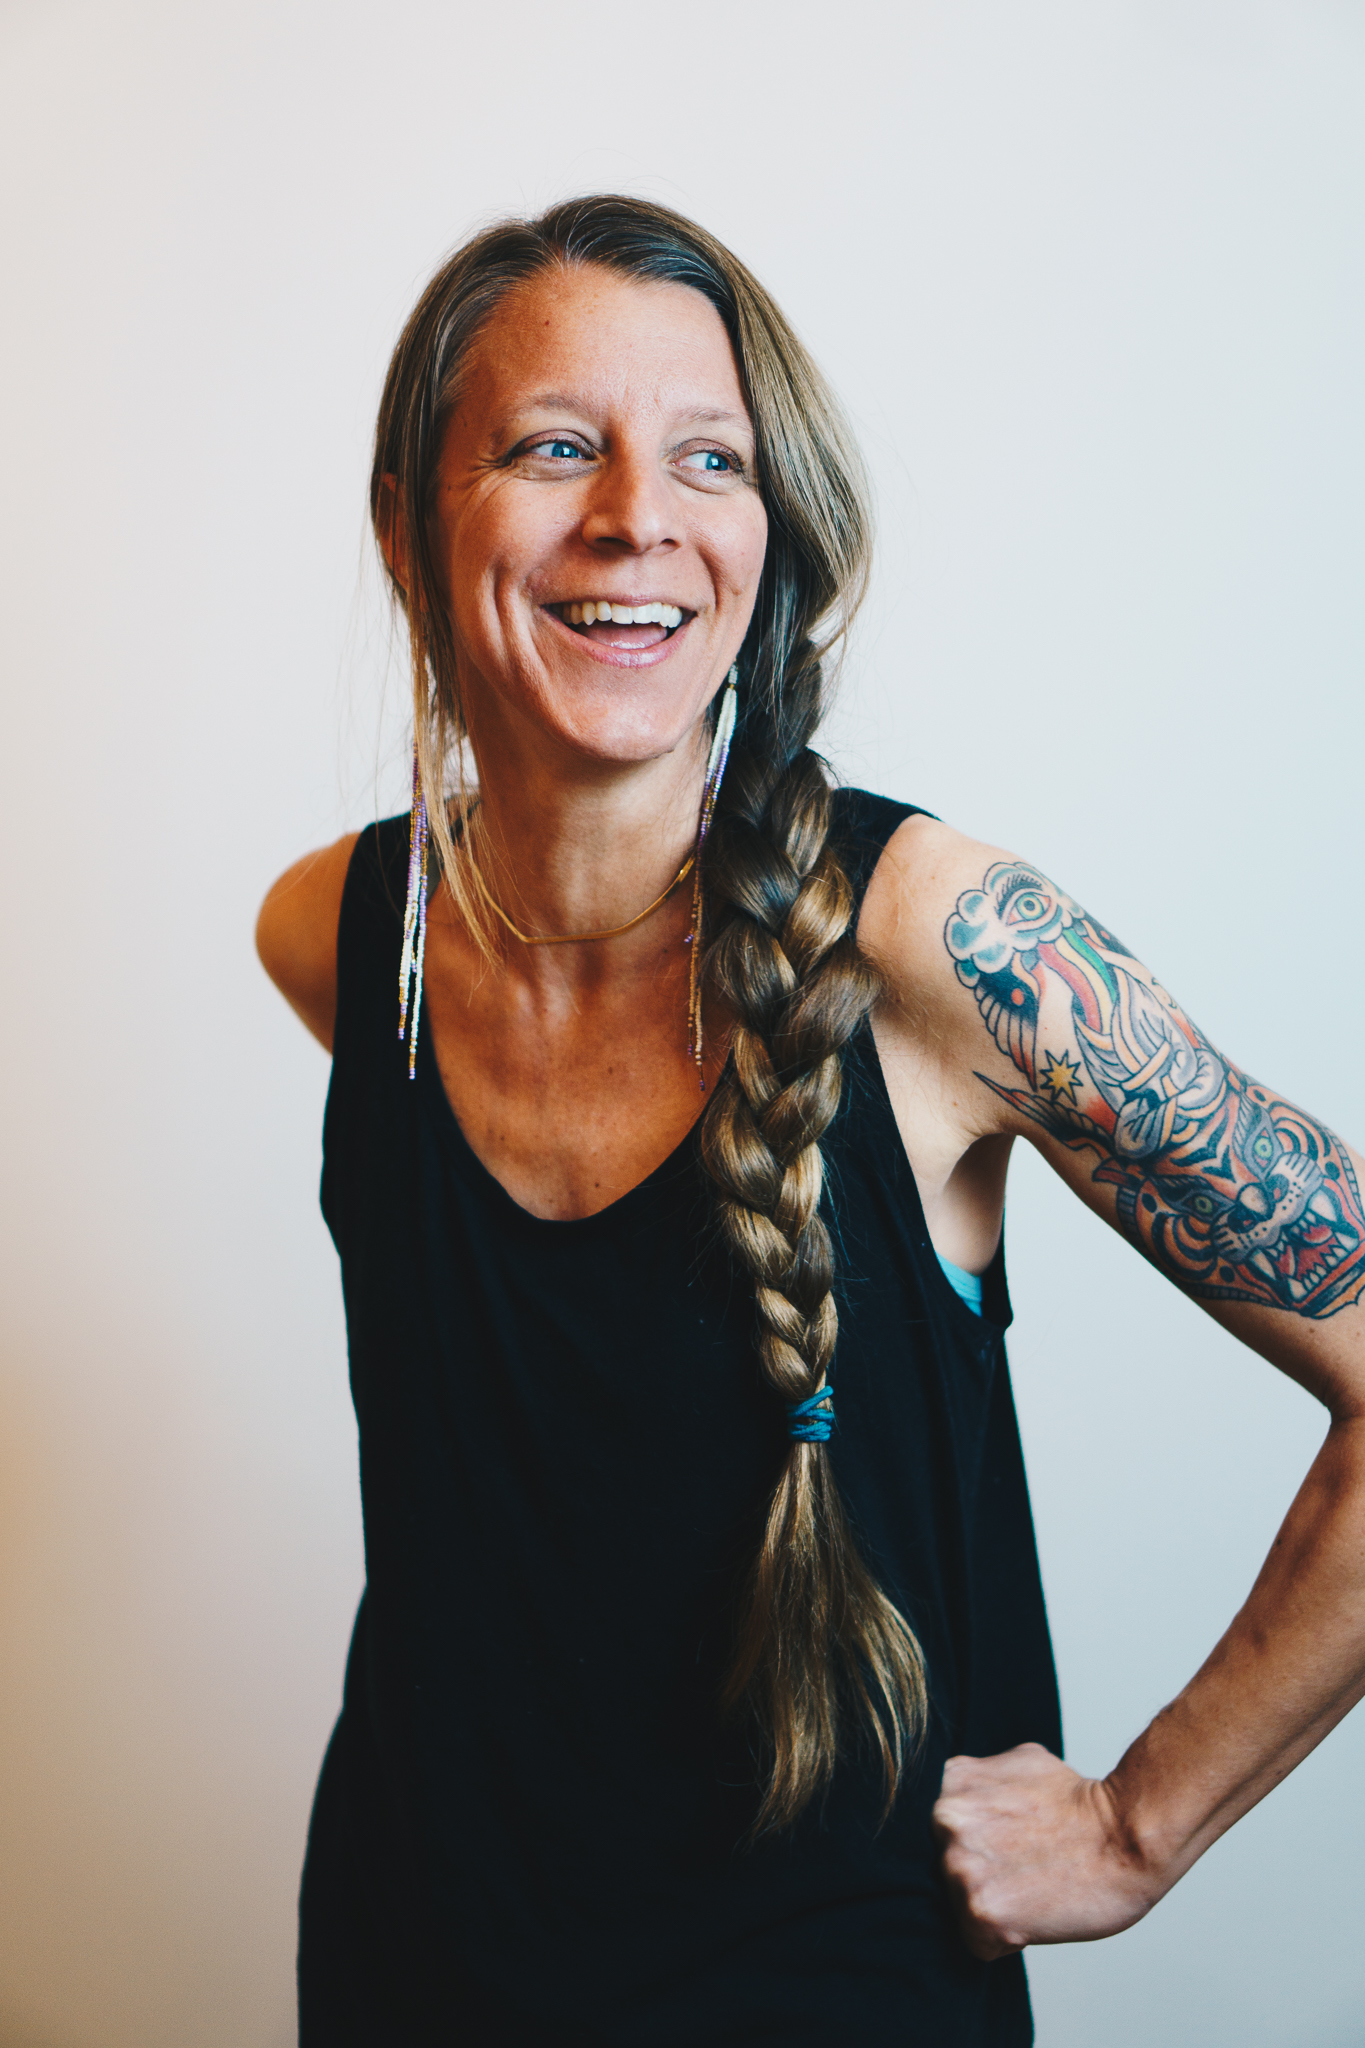 Summer Quashie has been leading retreats since 2007 and teaching yoga for close to two decades. Her retreats are transformative experience that touch the heart with softness and strength. -